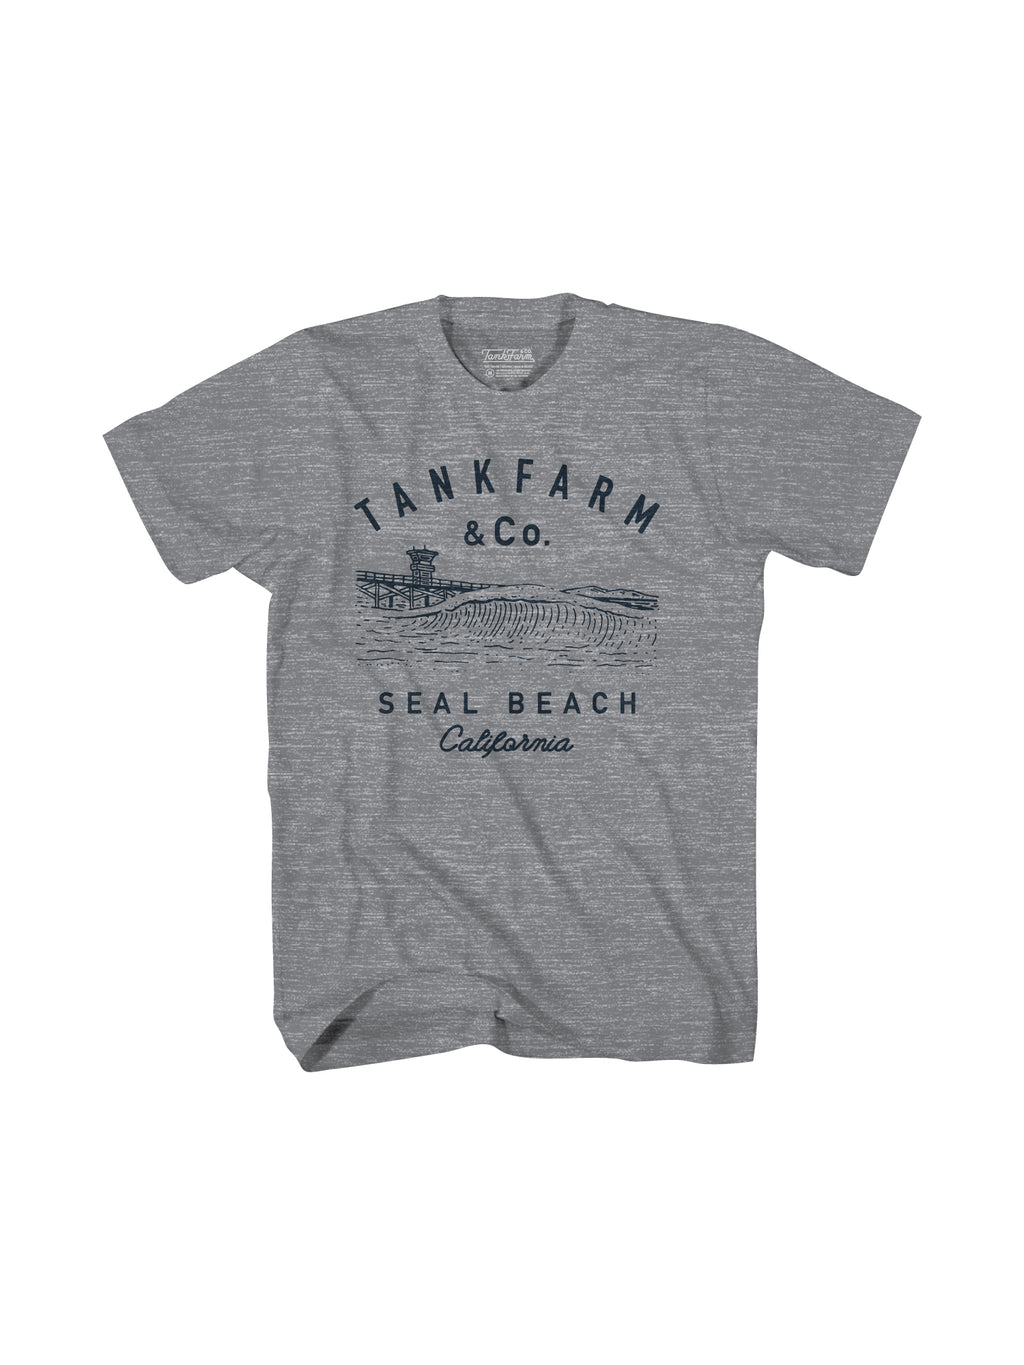 SHORE BREAK - VINTAGE SNOW - Tankfarm & Co.